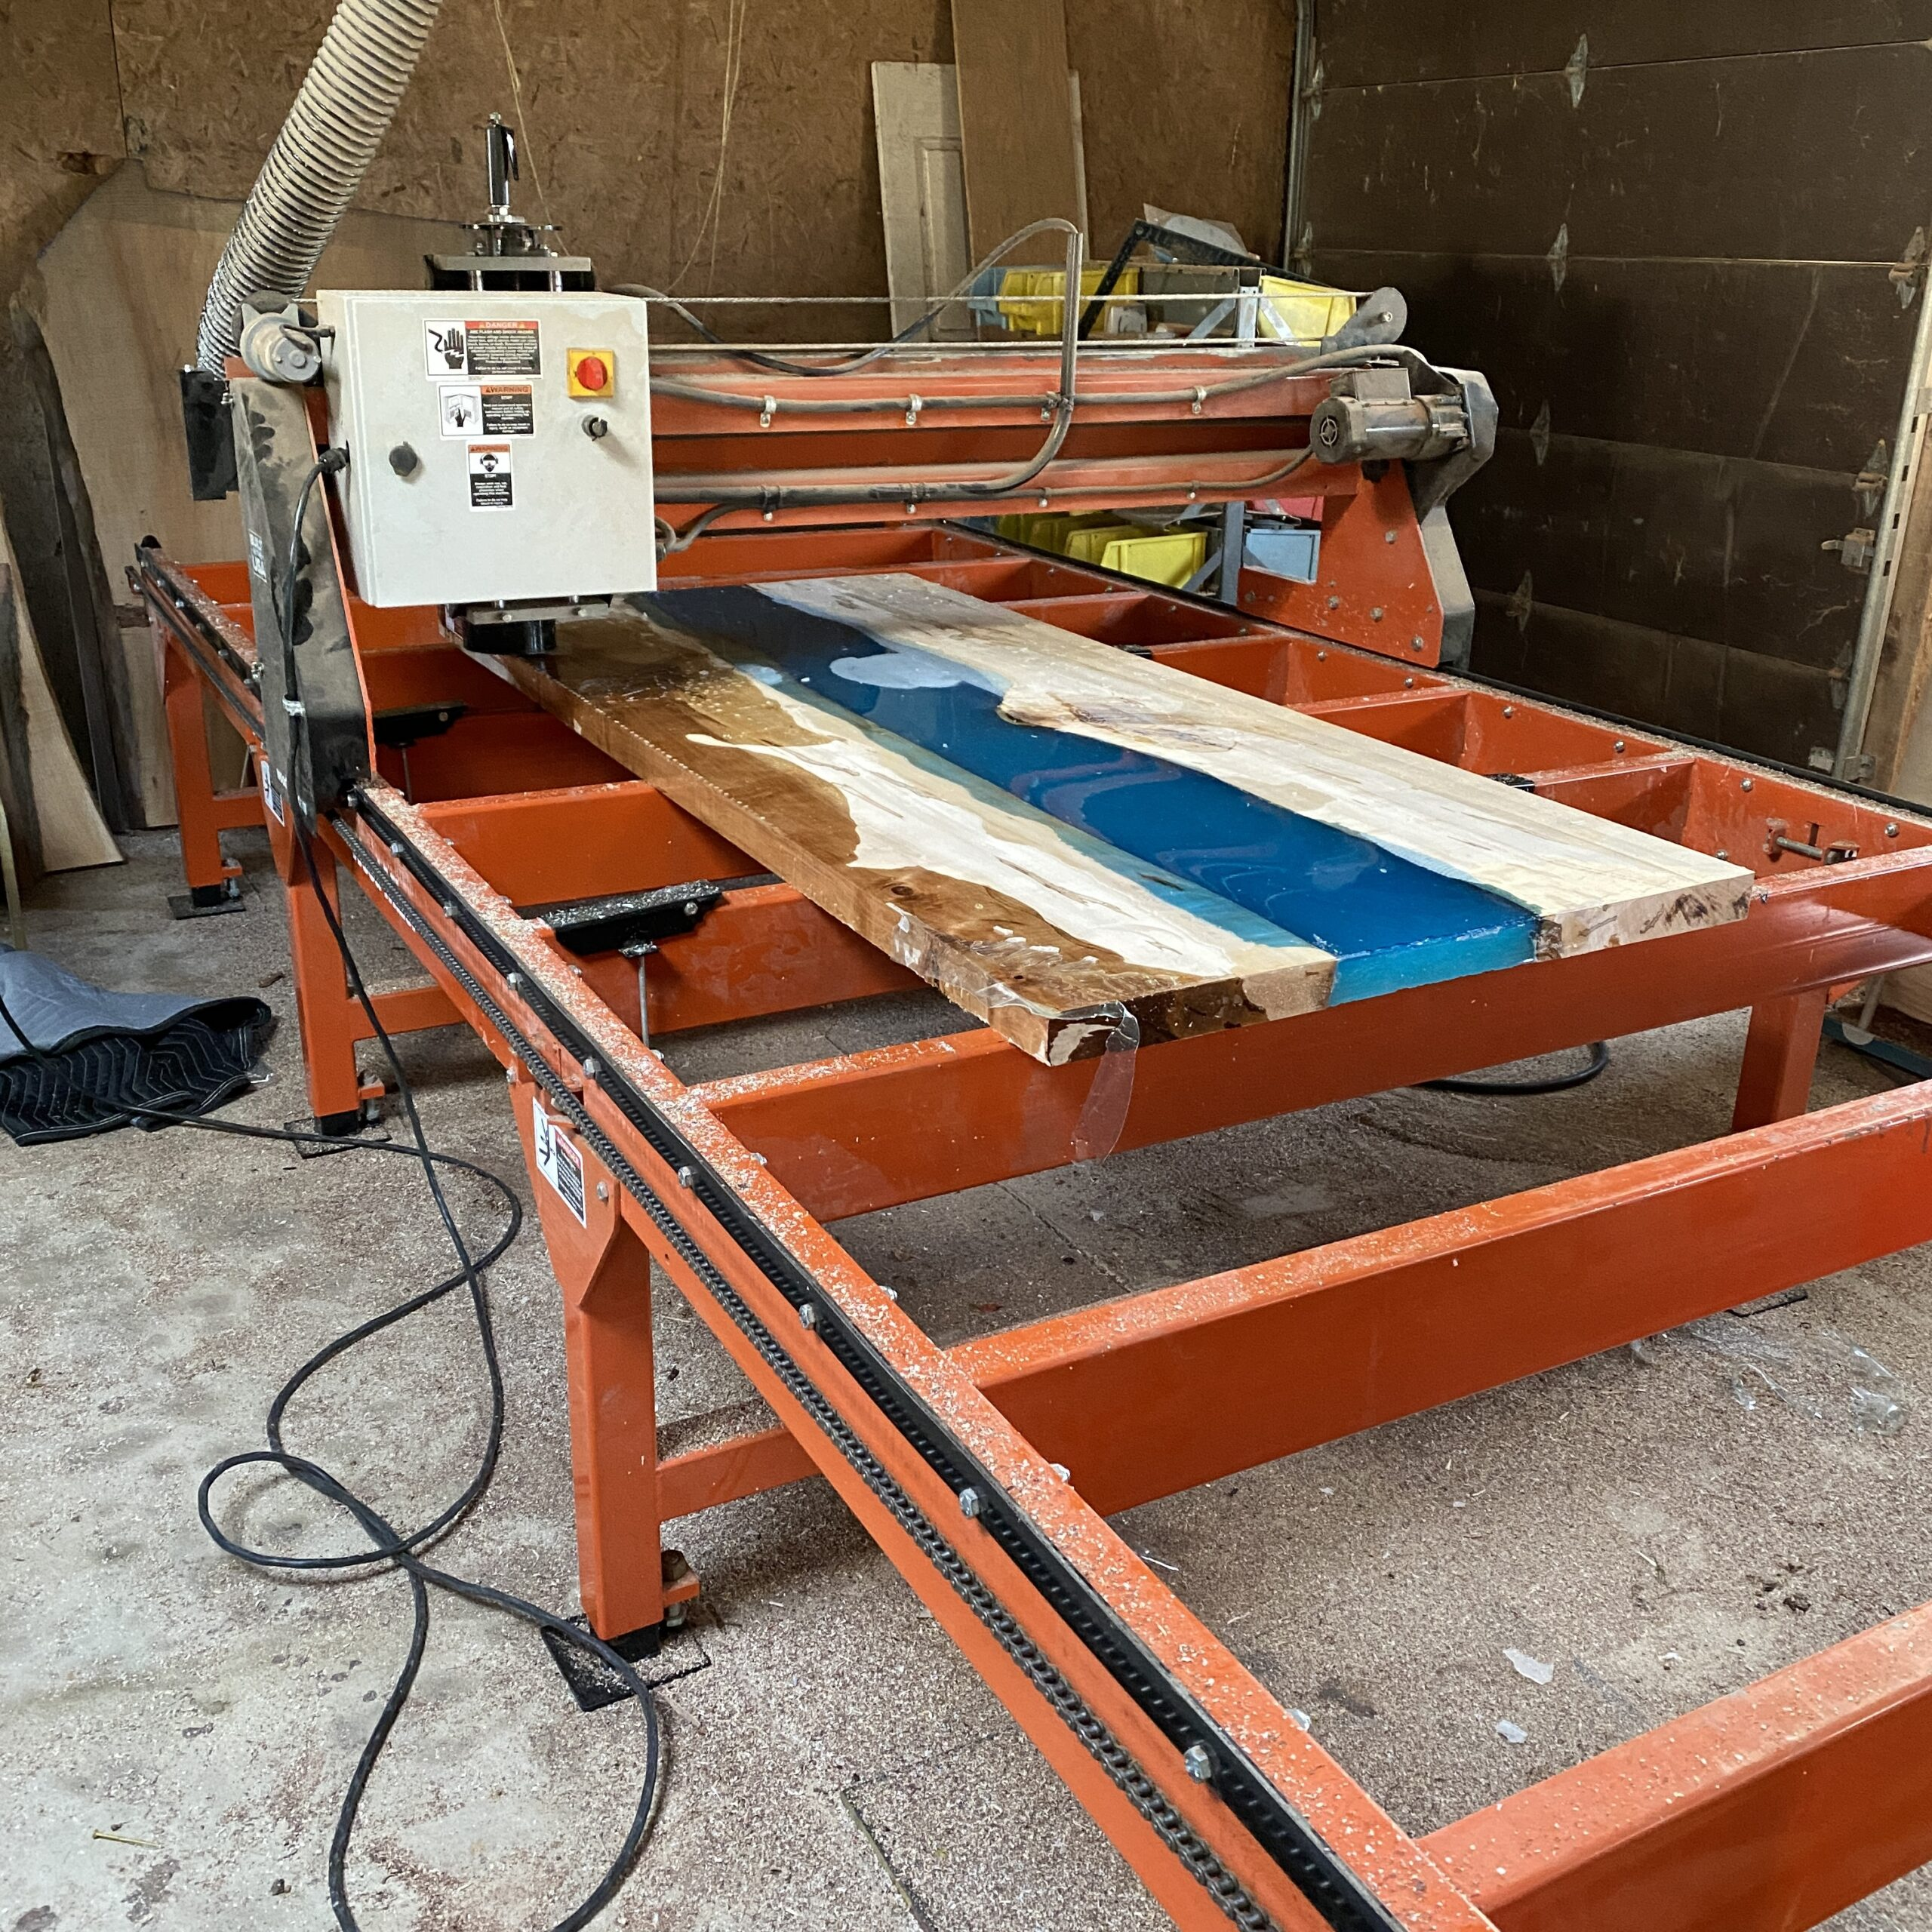 flattening the river table